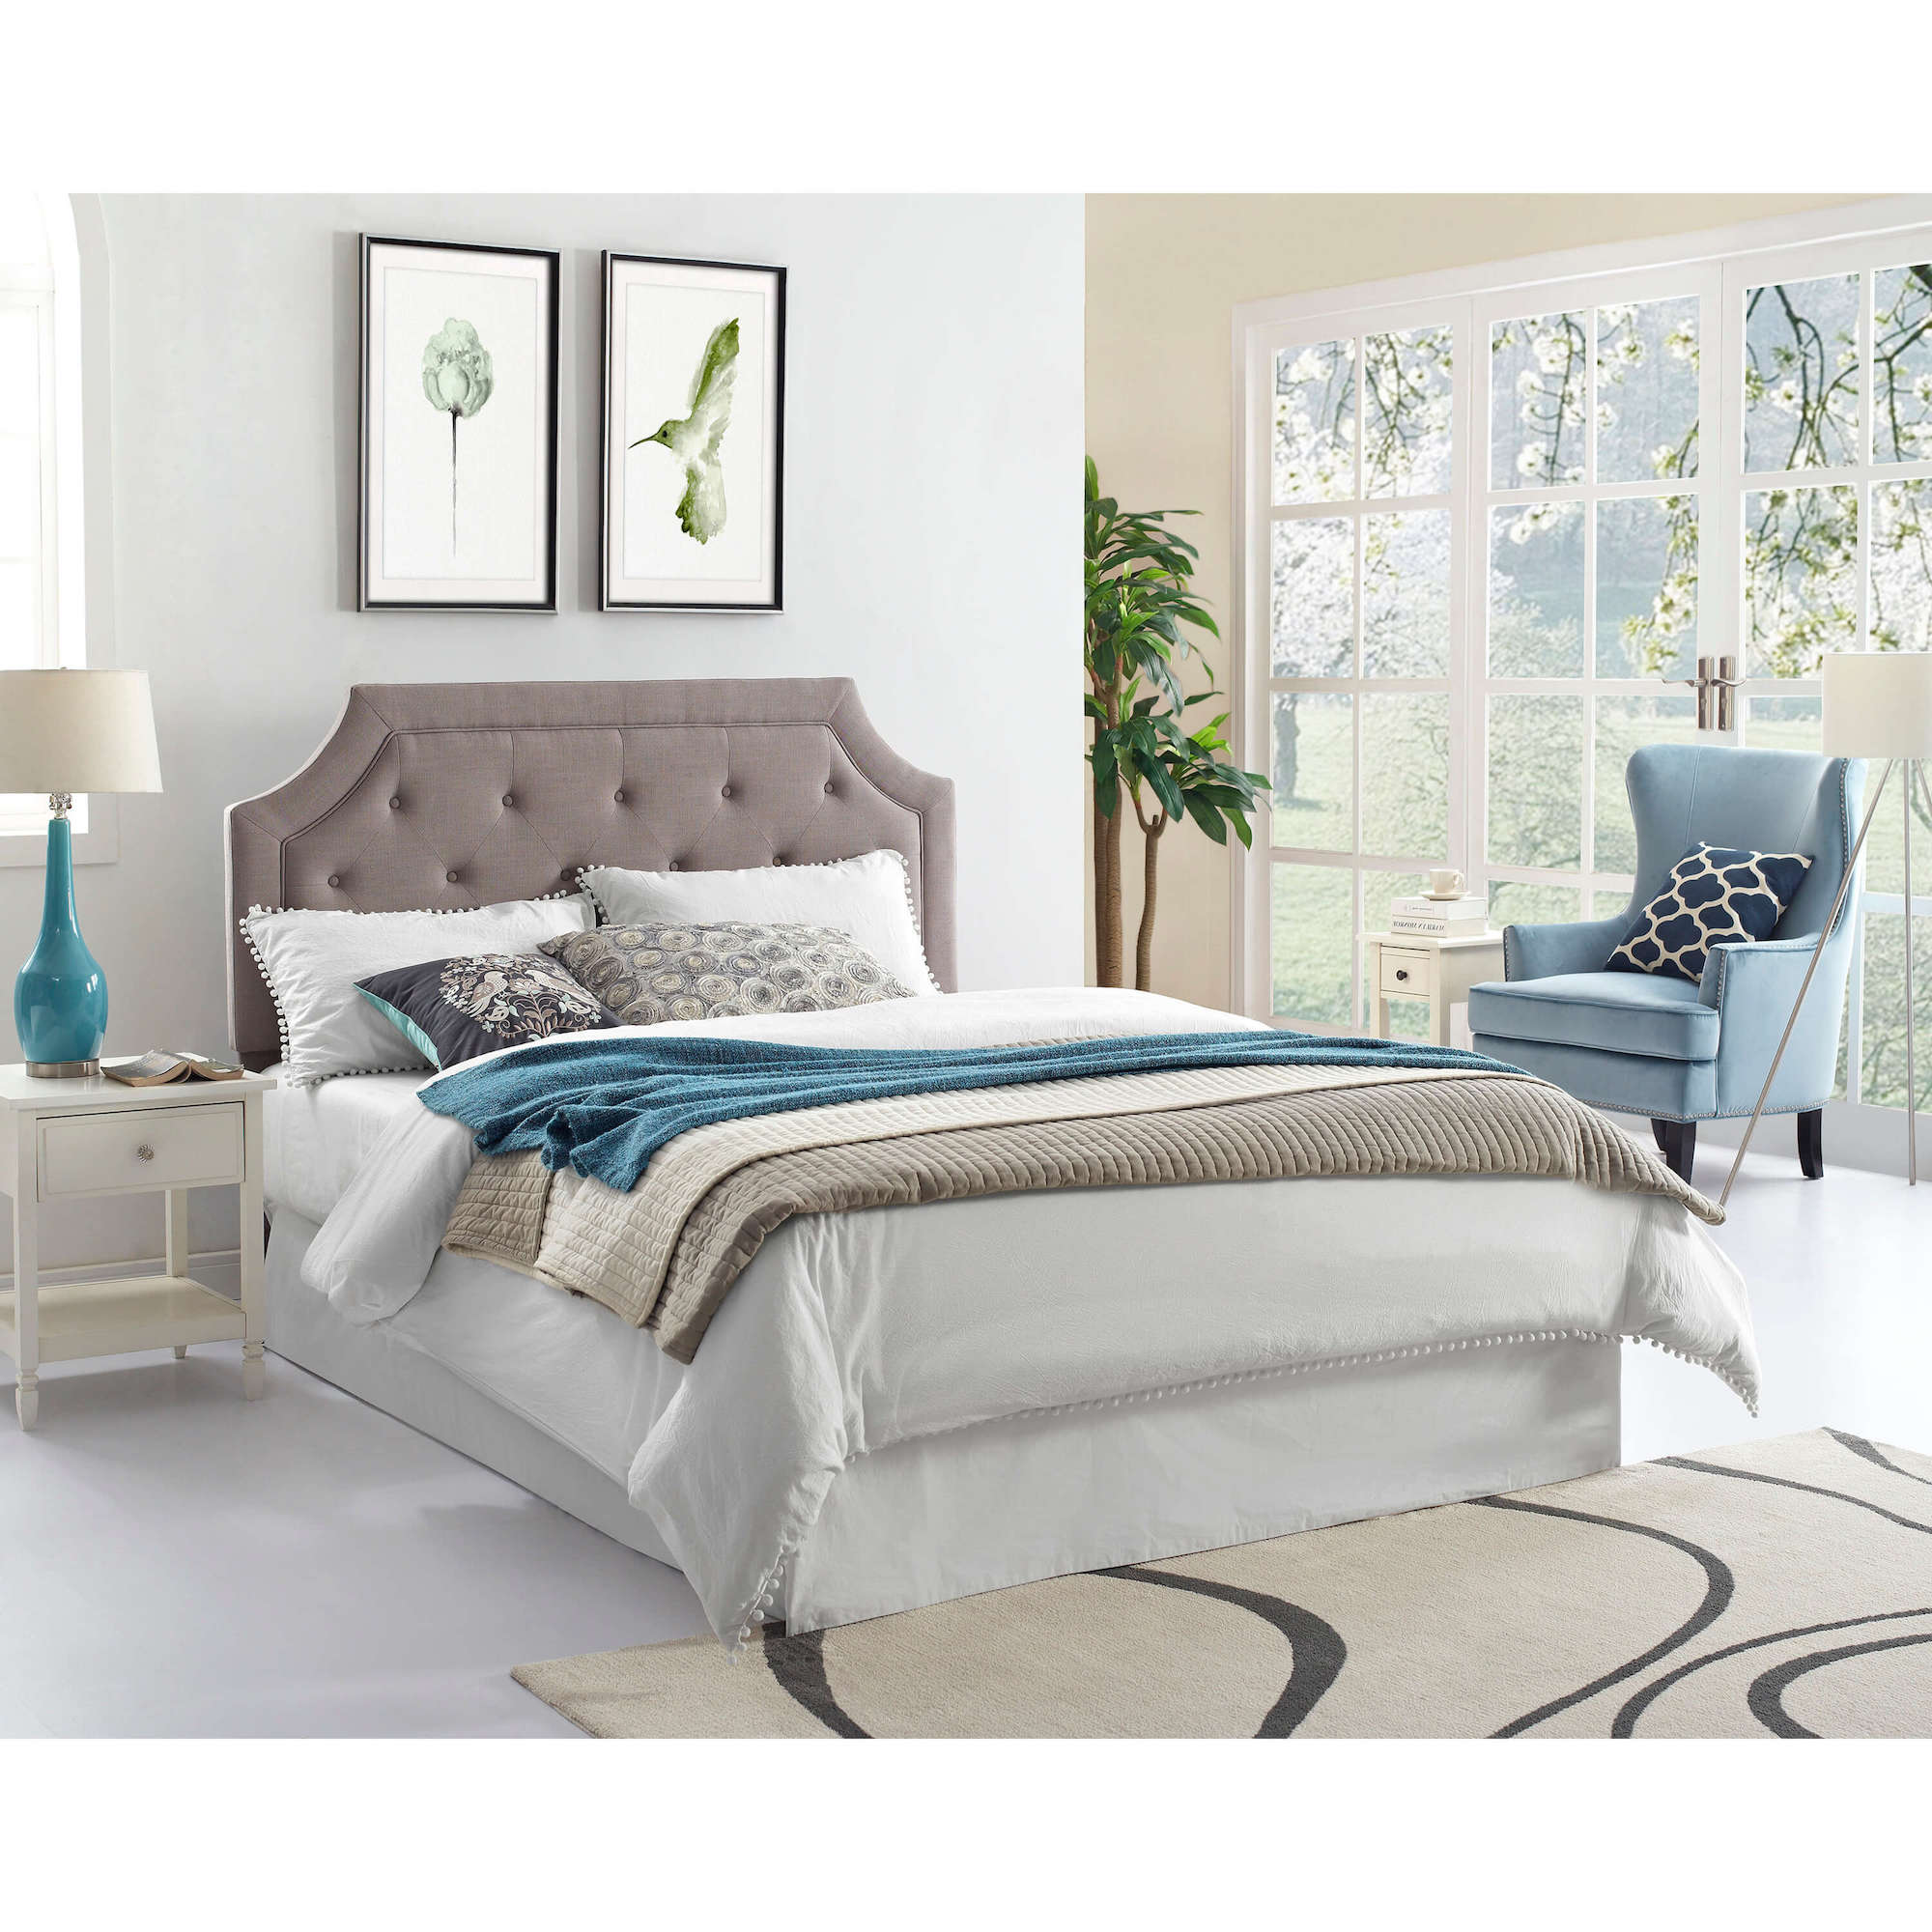 Rent To Own Crown Mark Inc Queen Grey Tufted Headboard With Pillow Top Mattress And Base At Aaron S Today